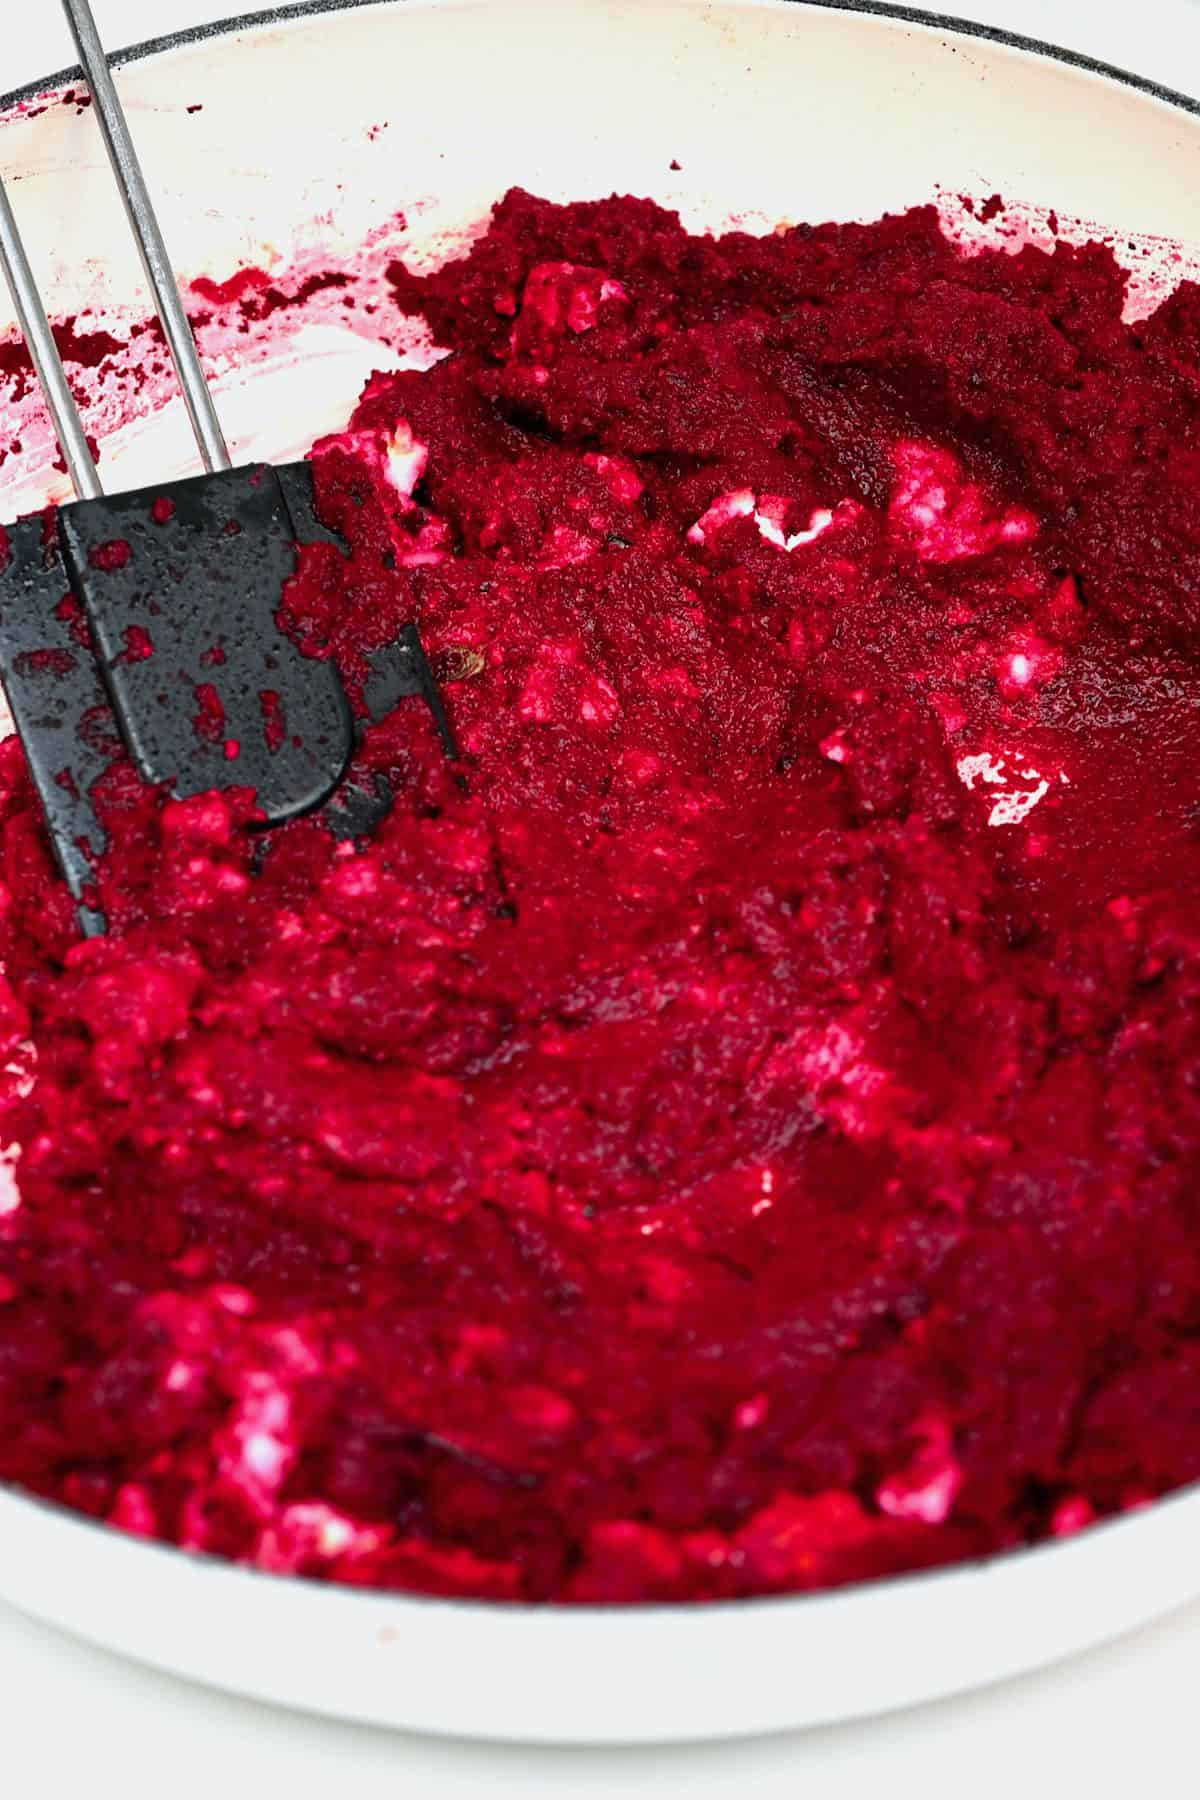 Mixing roasted beetroot with feta